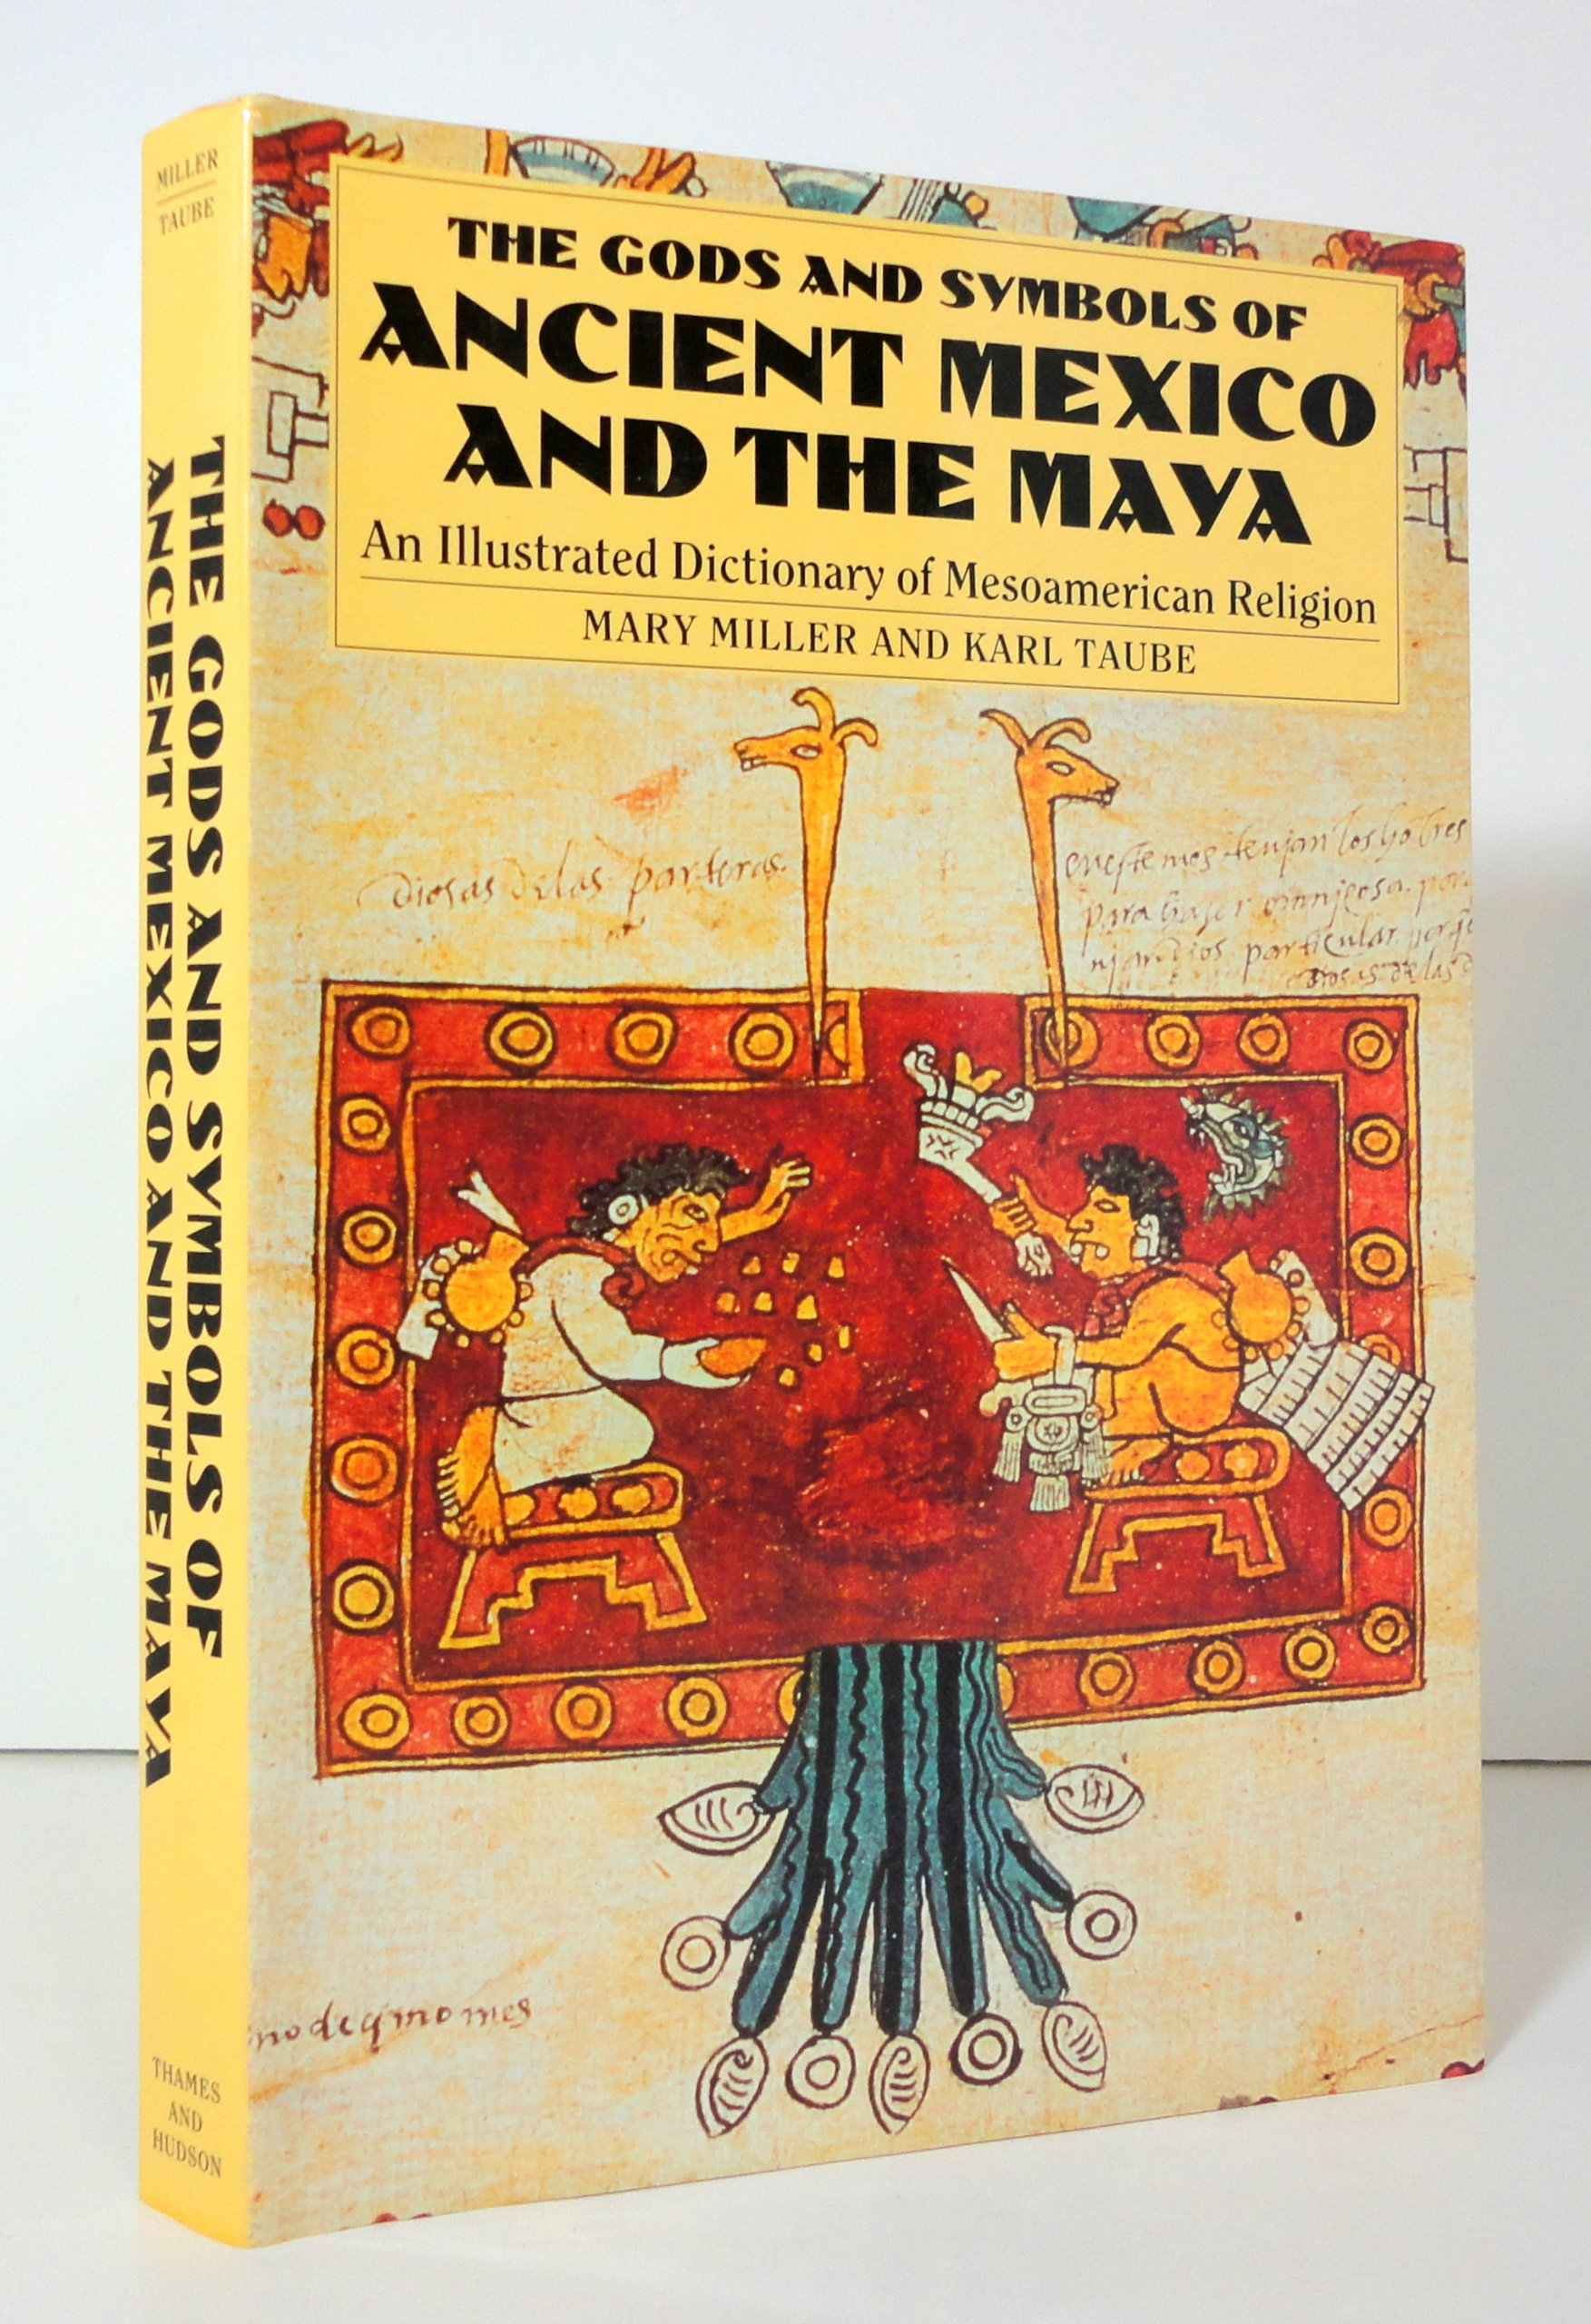 The gods and symbols of ancient mexico and the maya illustrated the gods and symbols of ancient mexico and the maya illustrated dictionary of mesoamerican religion amazon mary ellen miller karl taube books biocorpaavc Choice Image